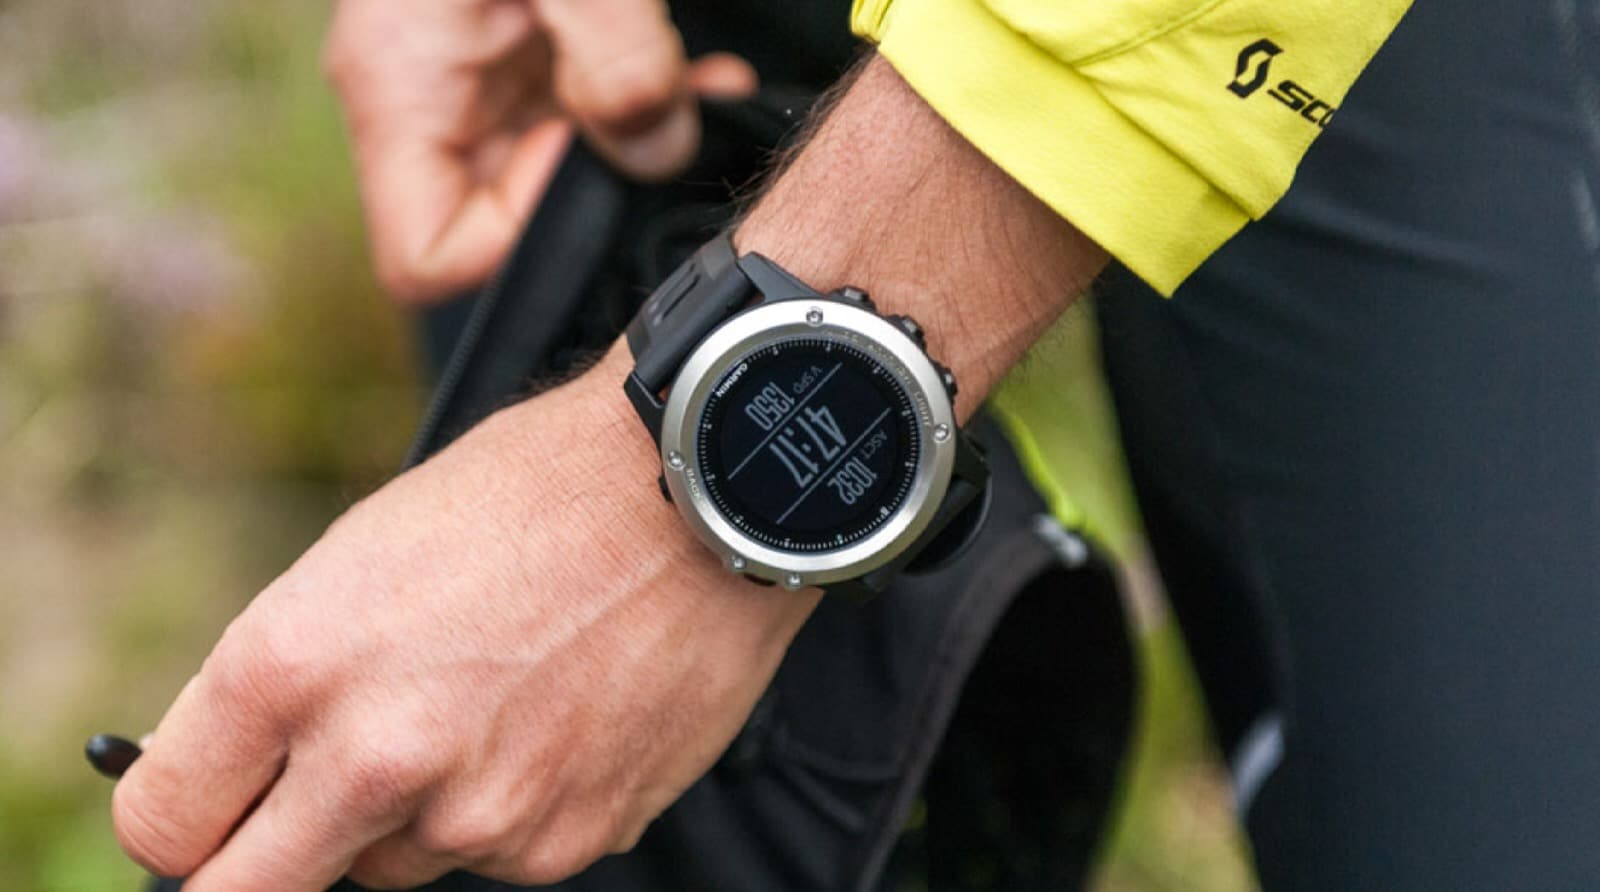 us navy equips pilots with garmin fenix 3 sports